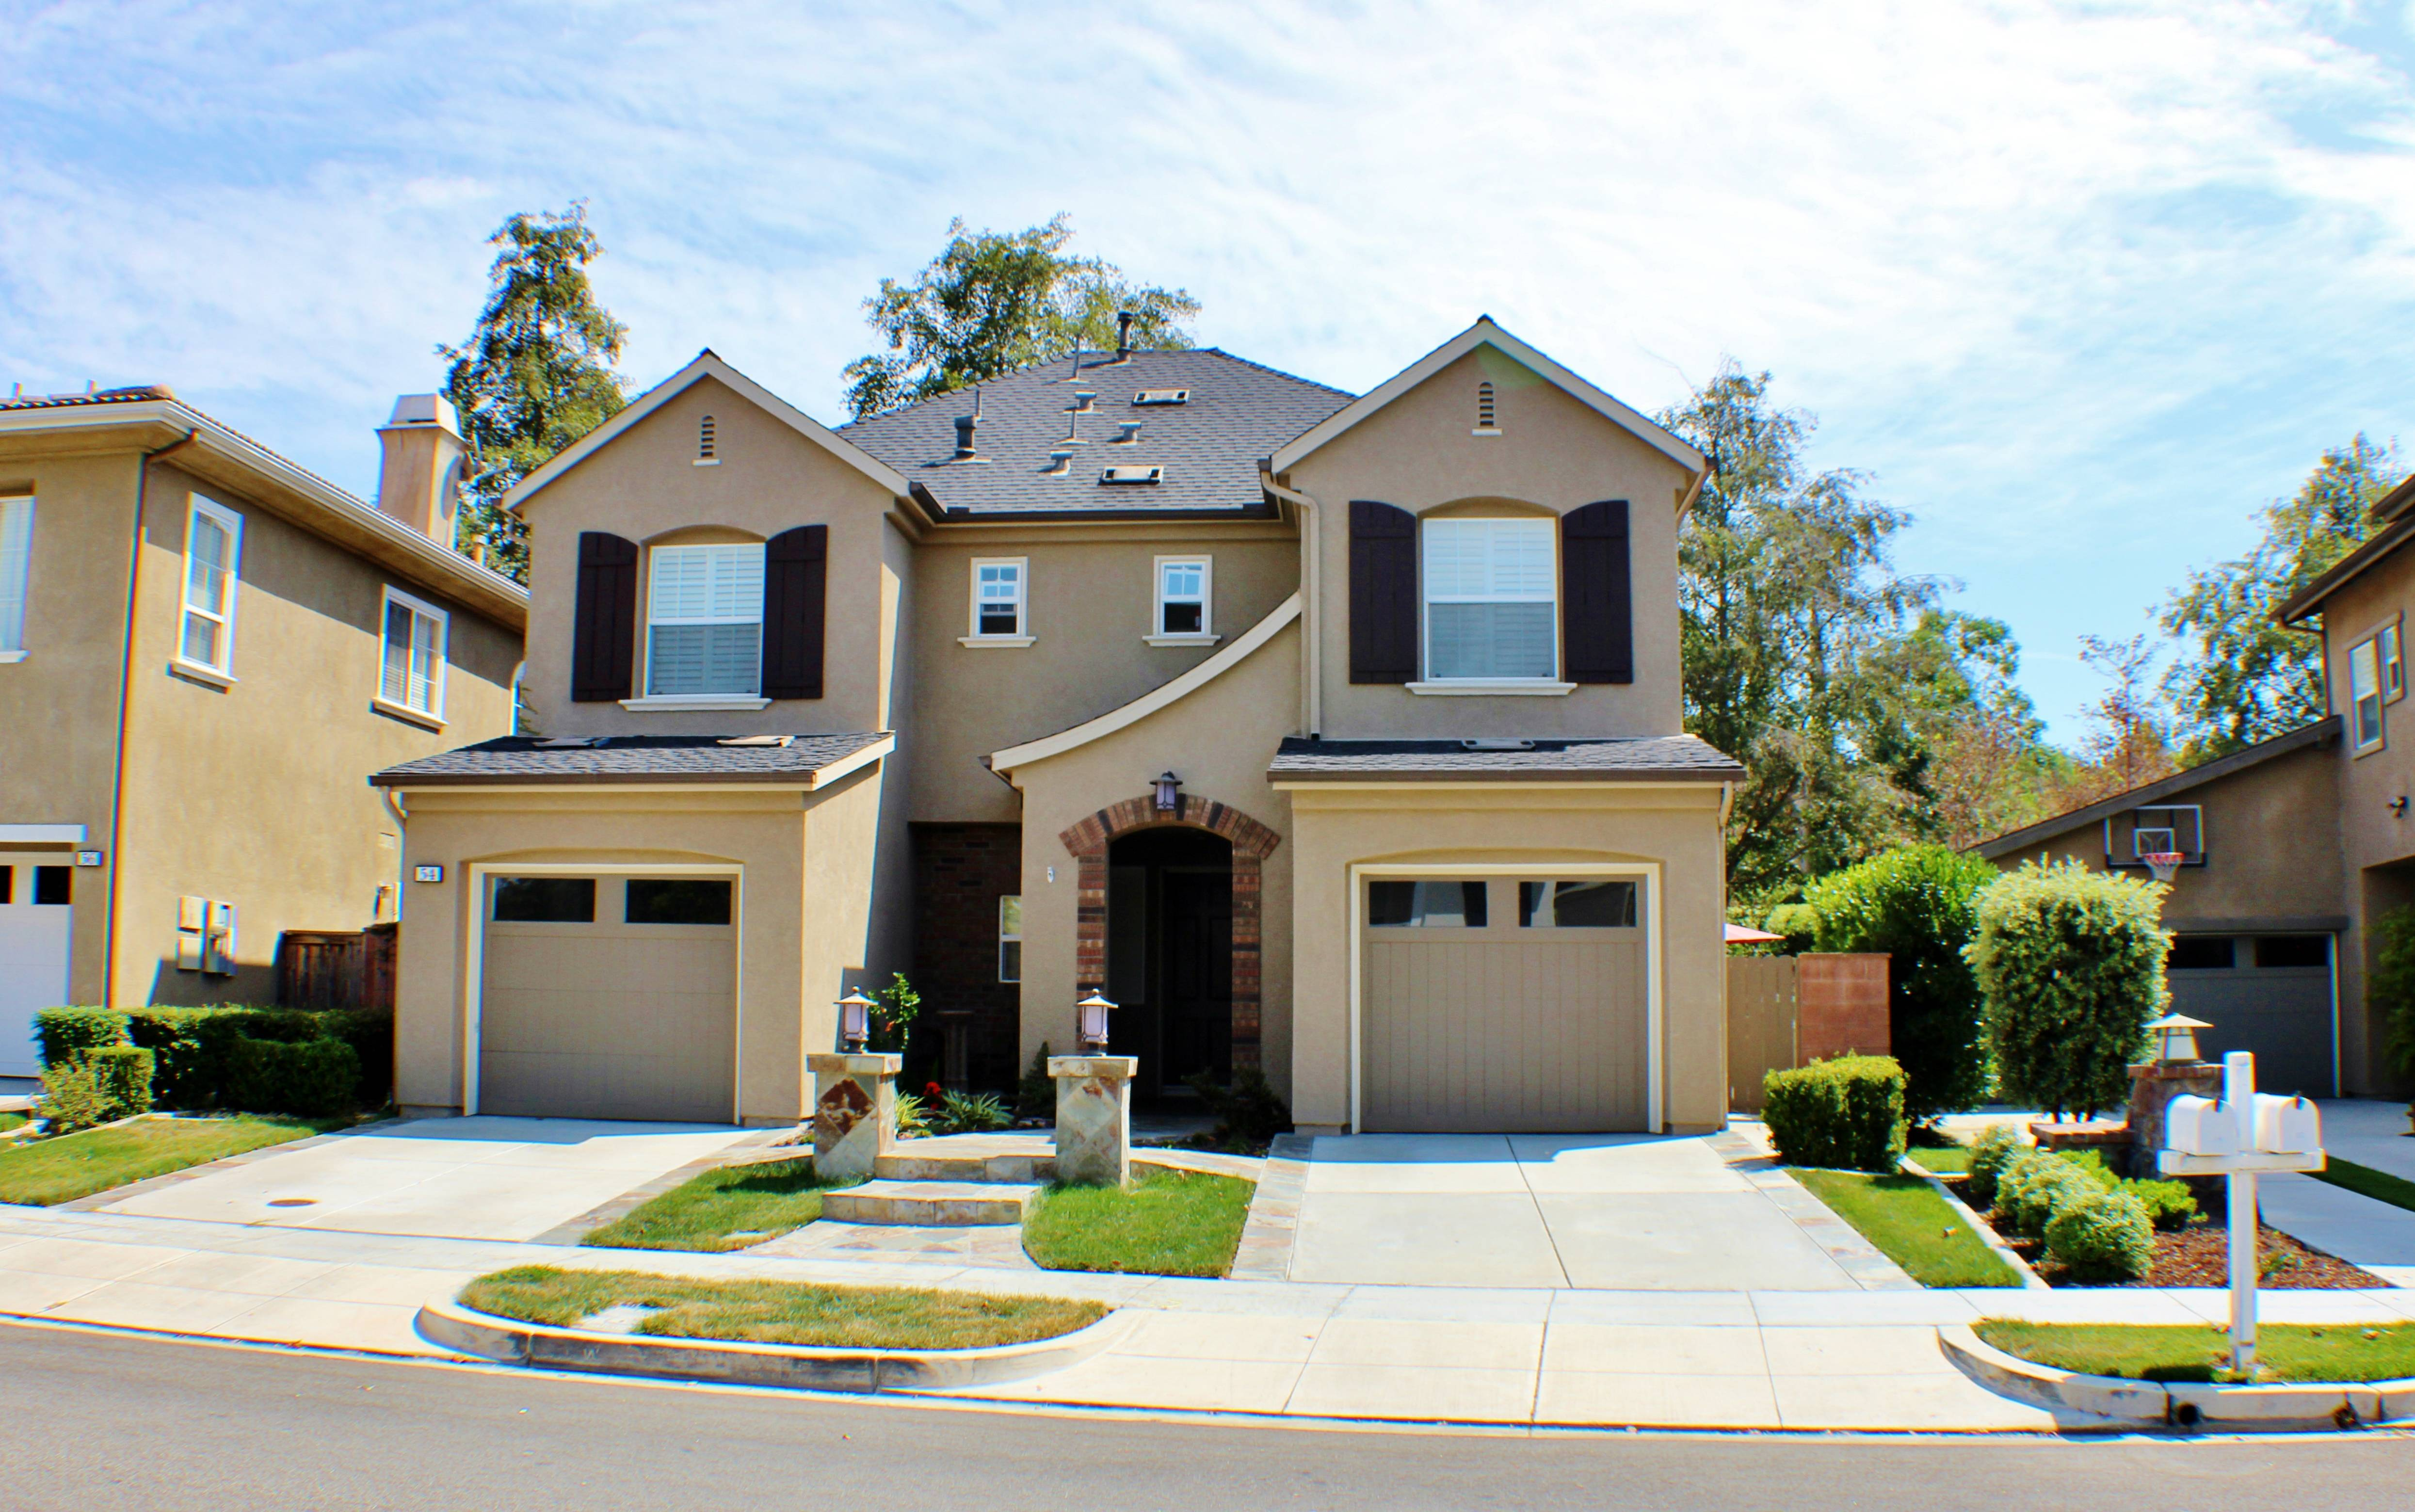 4 bedroom ladera ranch home for sale for 4 bedroom ranch